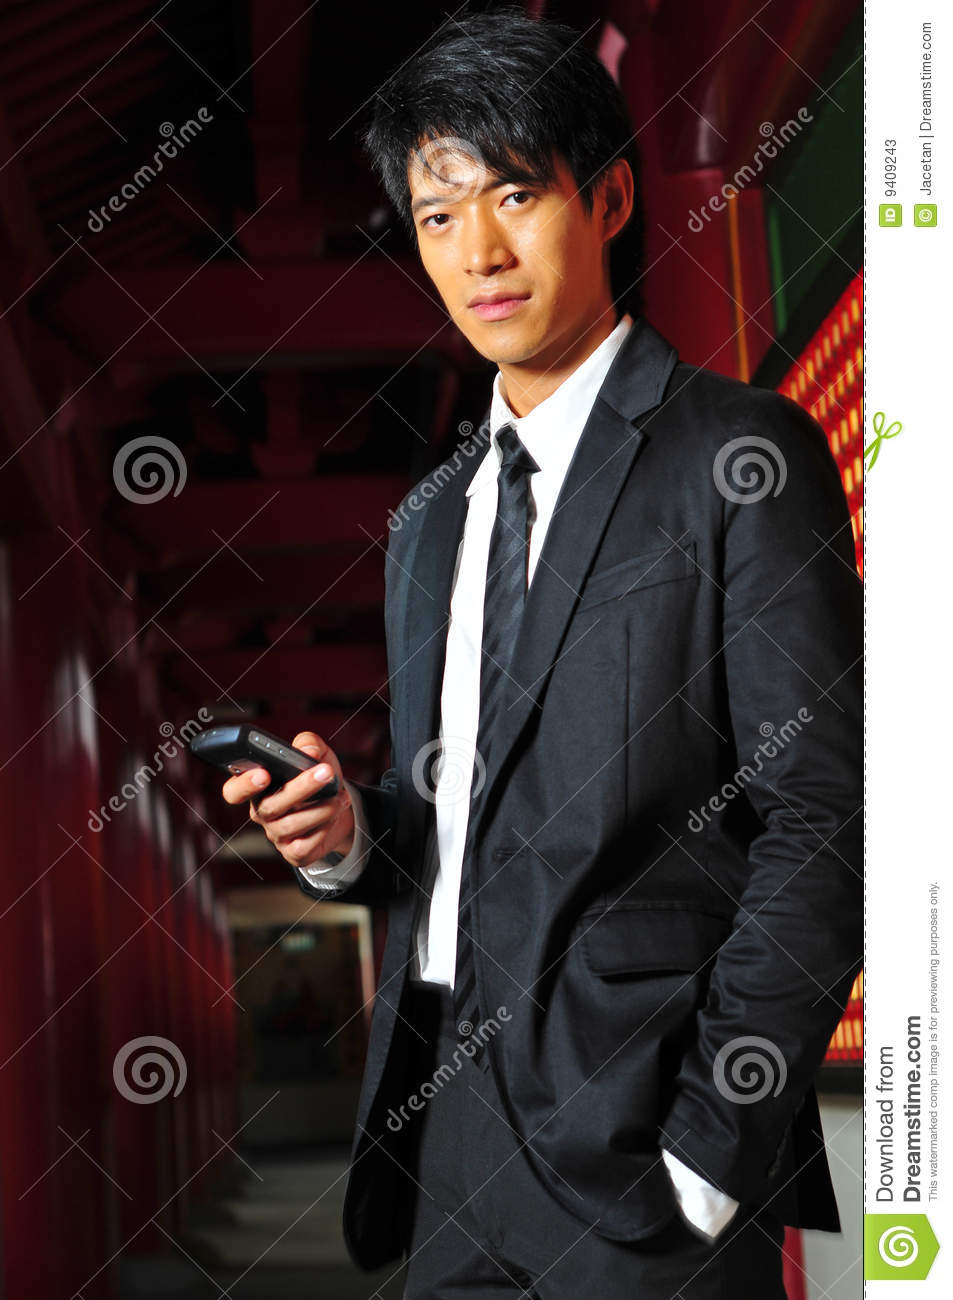 Asian man in suit